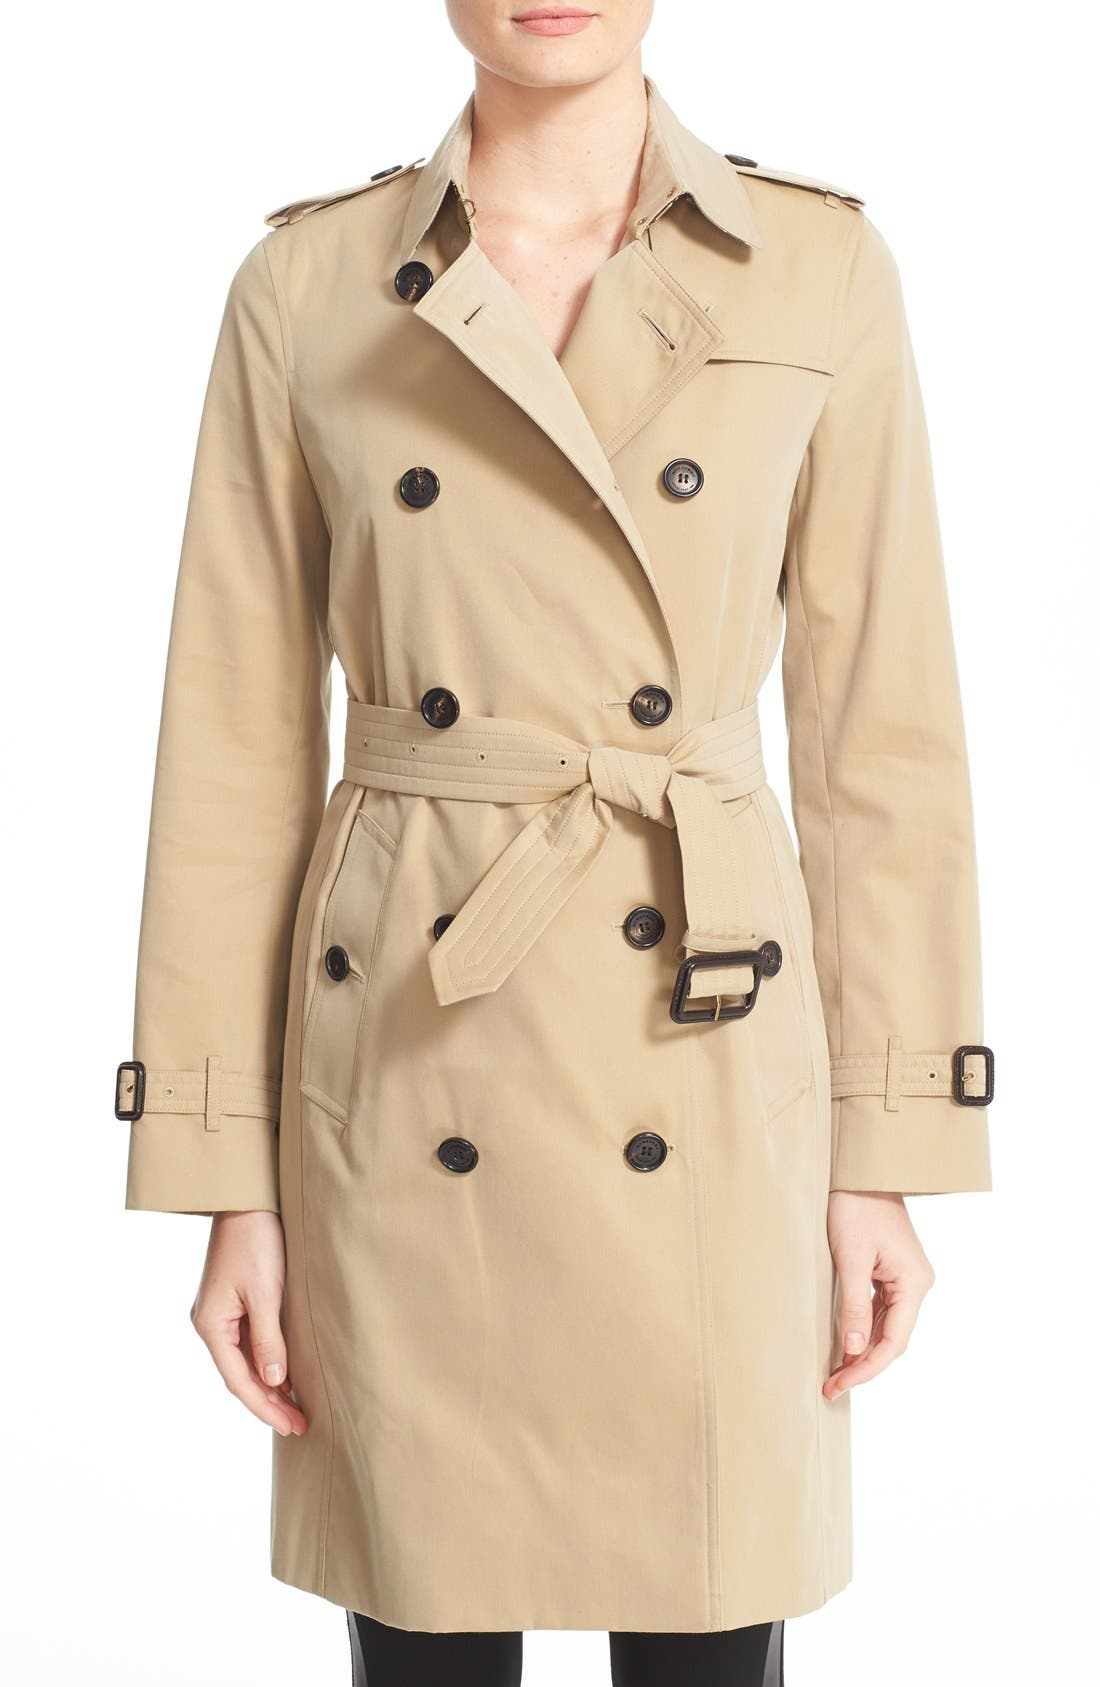 Burberry London 'Kensington' Long Trench Coat